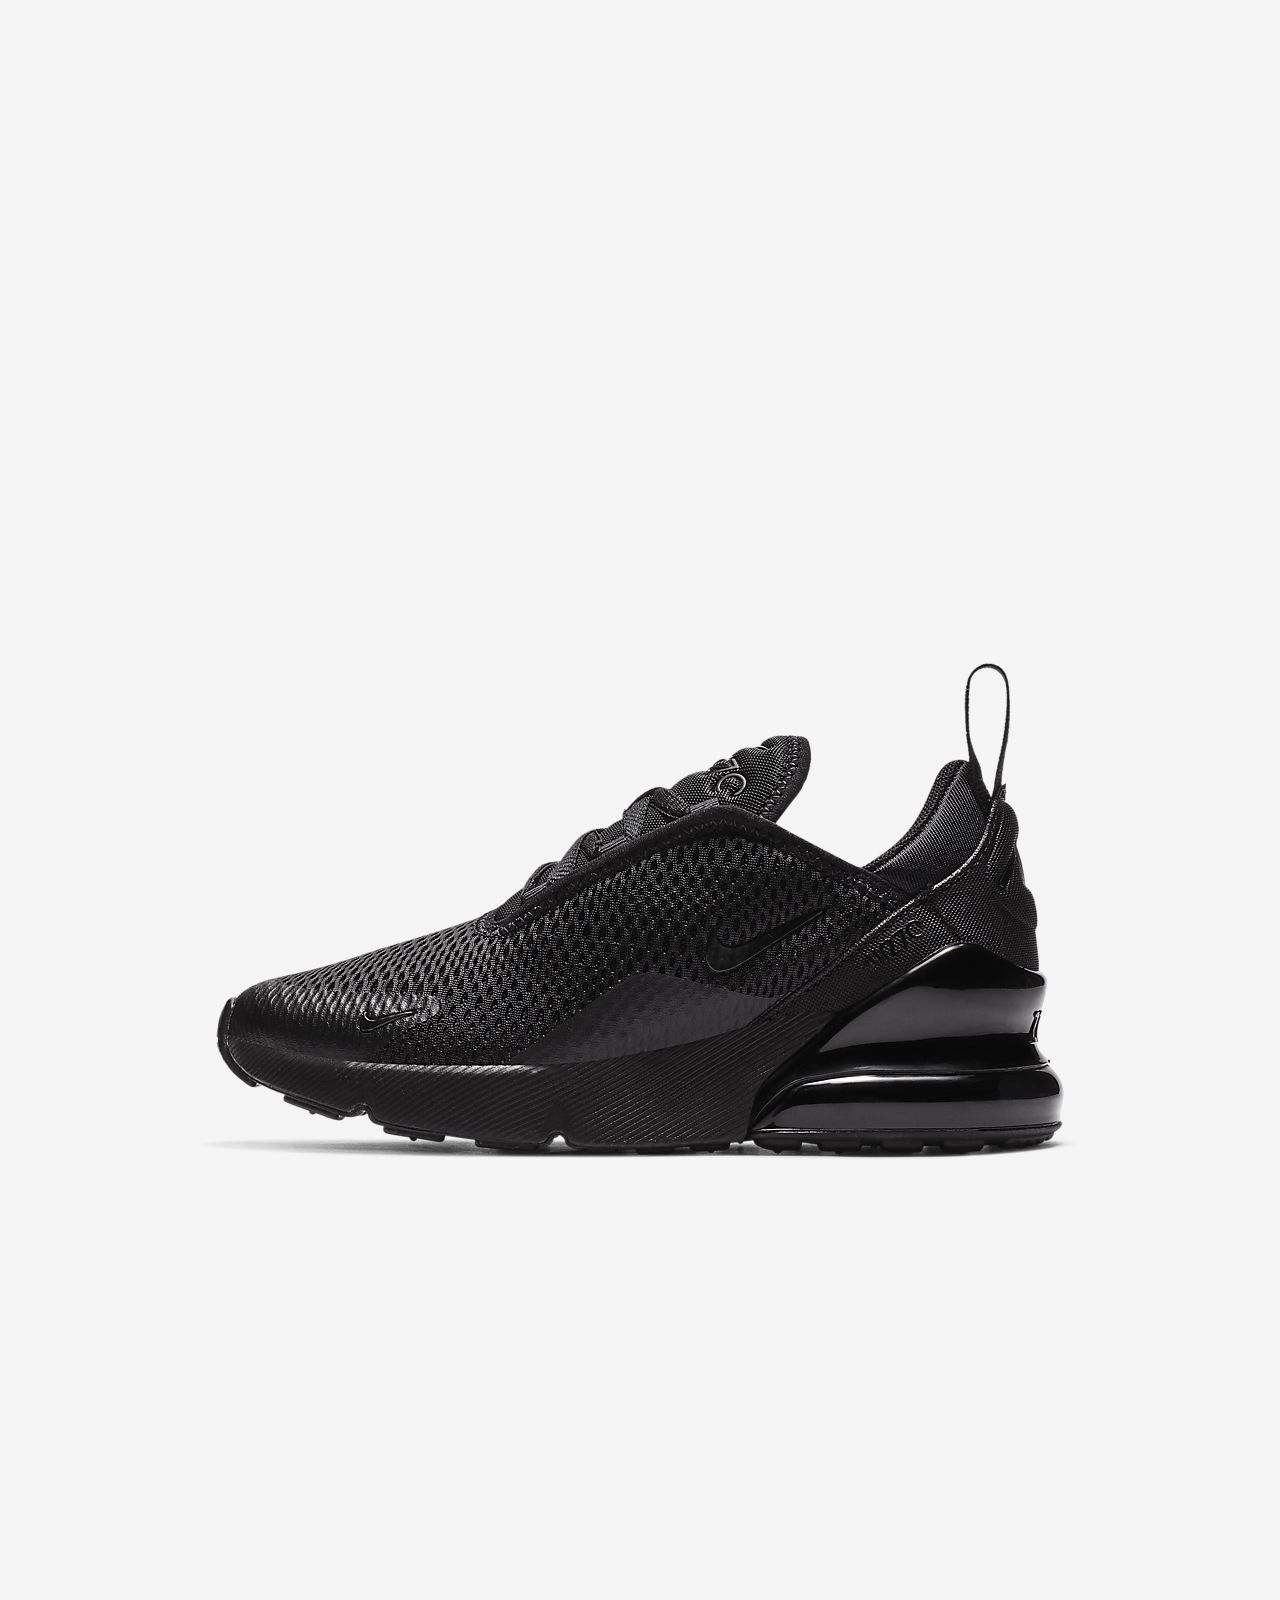 on sale f4fd6 9b50b ... Scarpa Nike Air Max 270 - Bambini